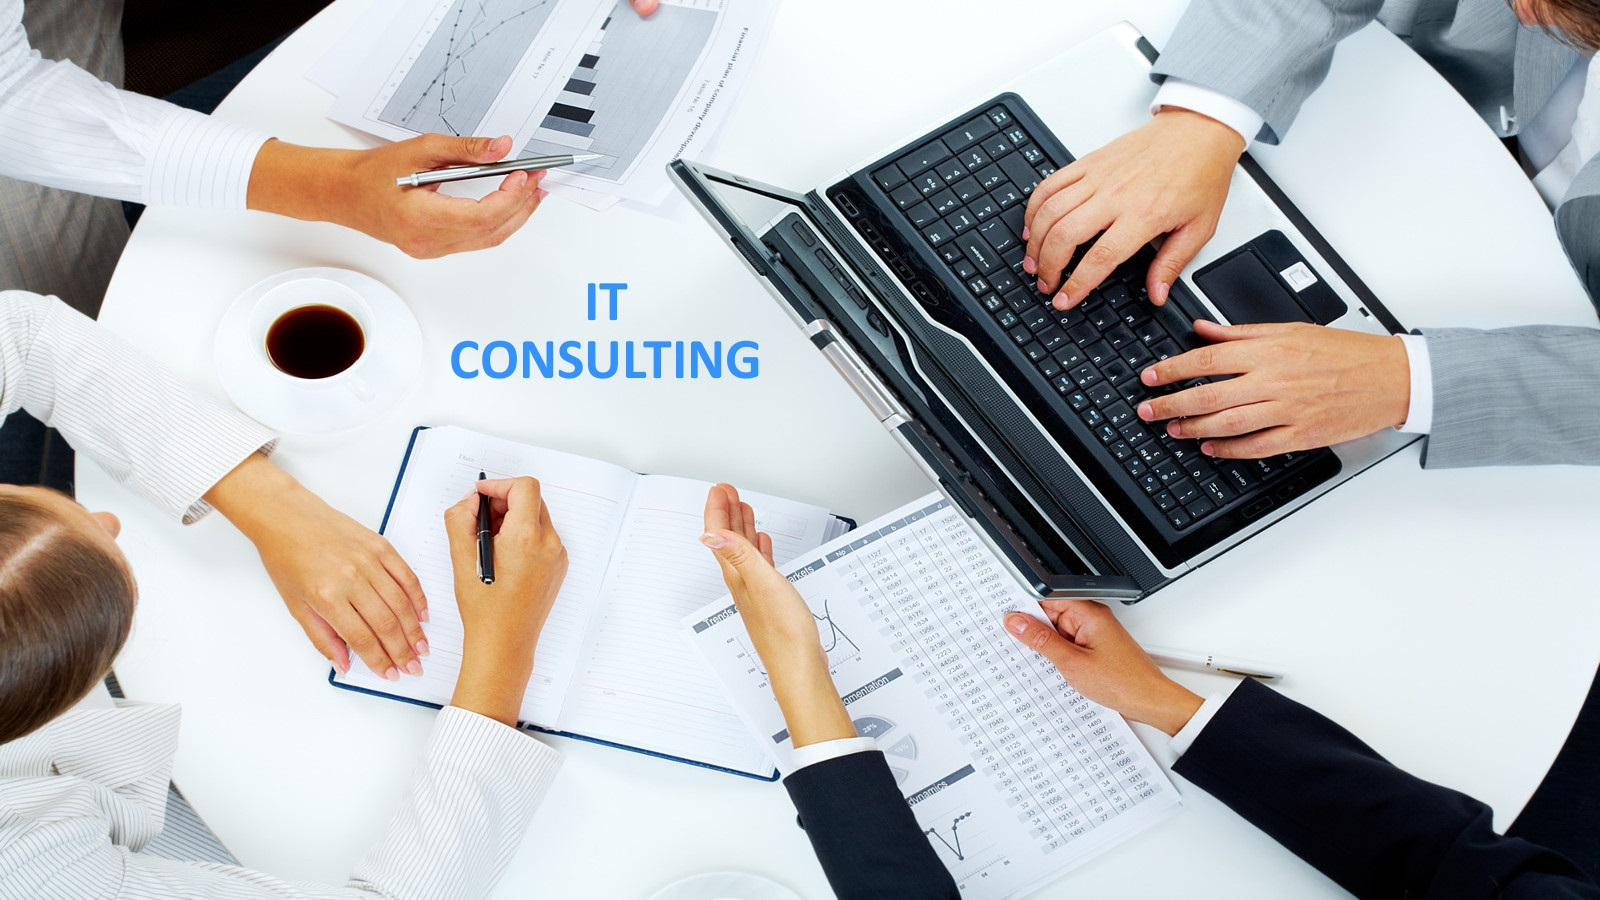 how to find it consulting jobs